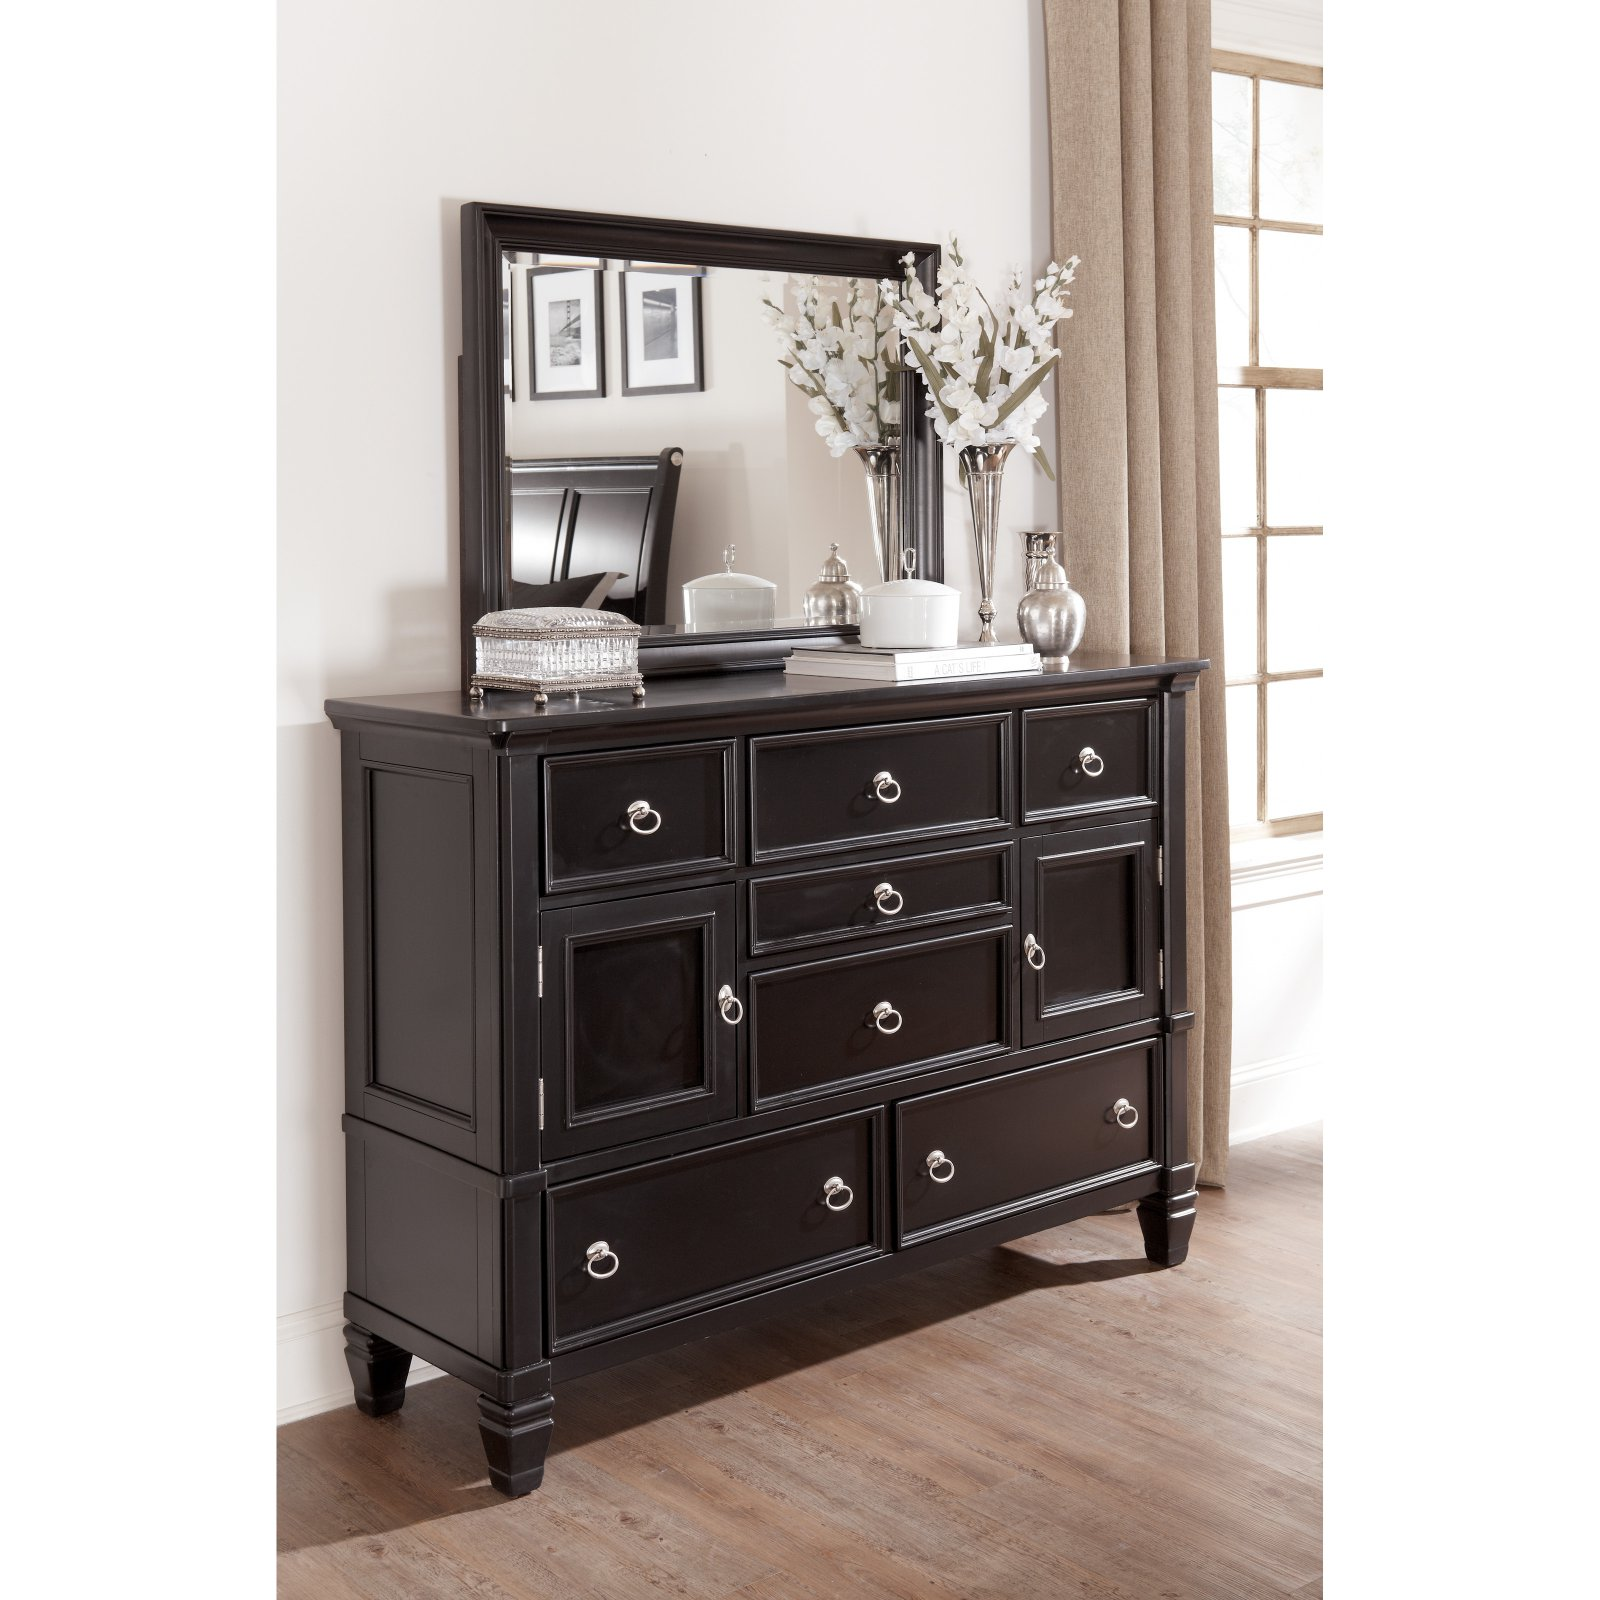 Signature Design by Ashley Greensburg 7 Drawer Dresser with Optional Mirror